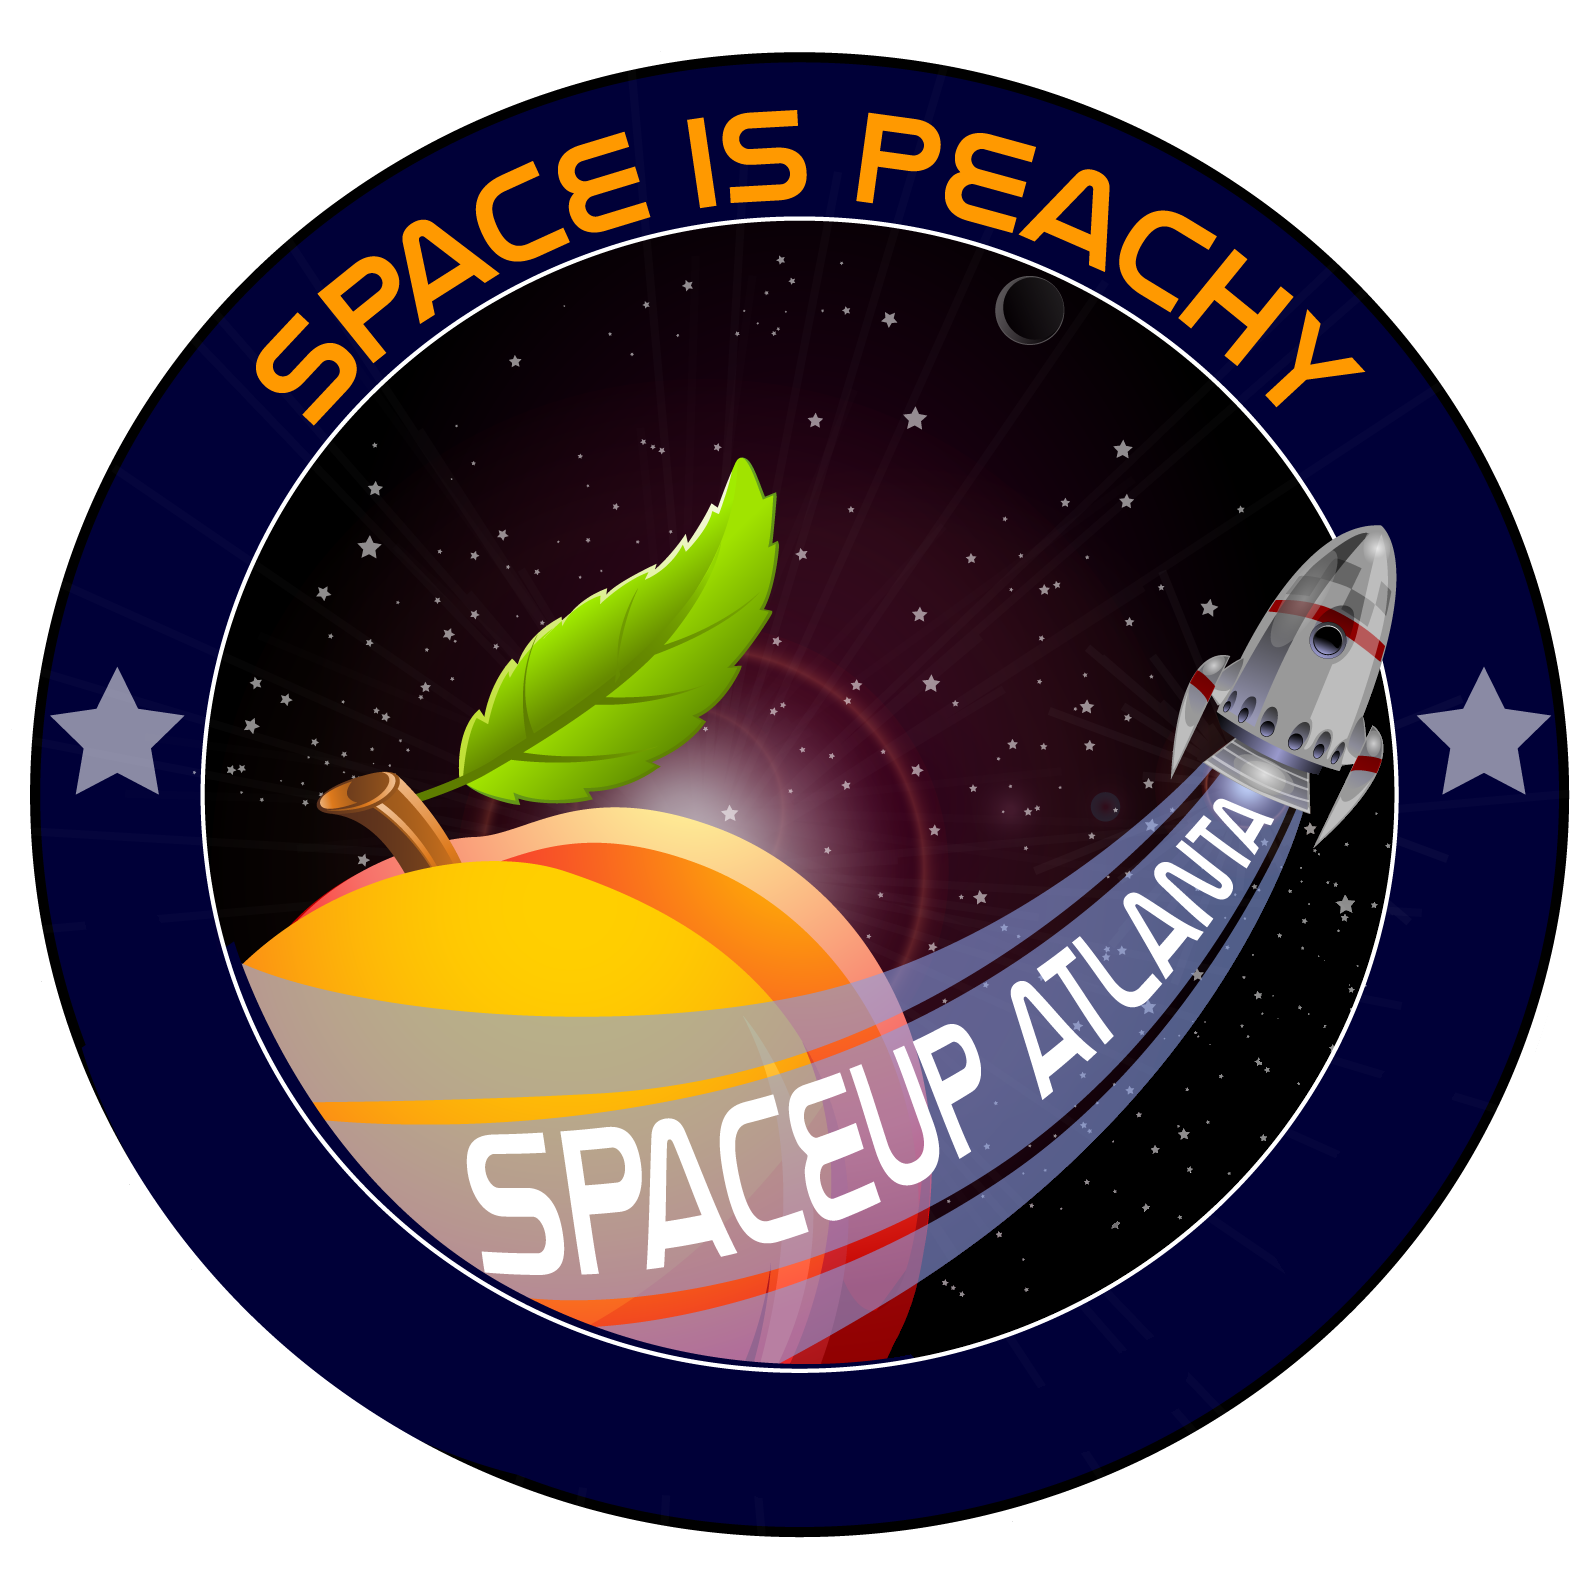 spaceispeachy_large_2013